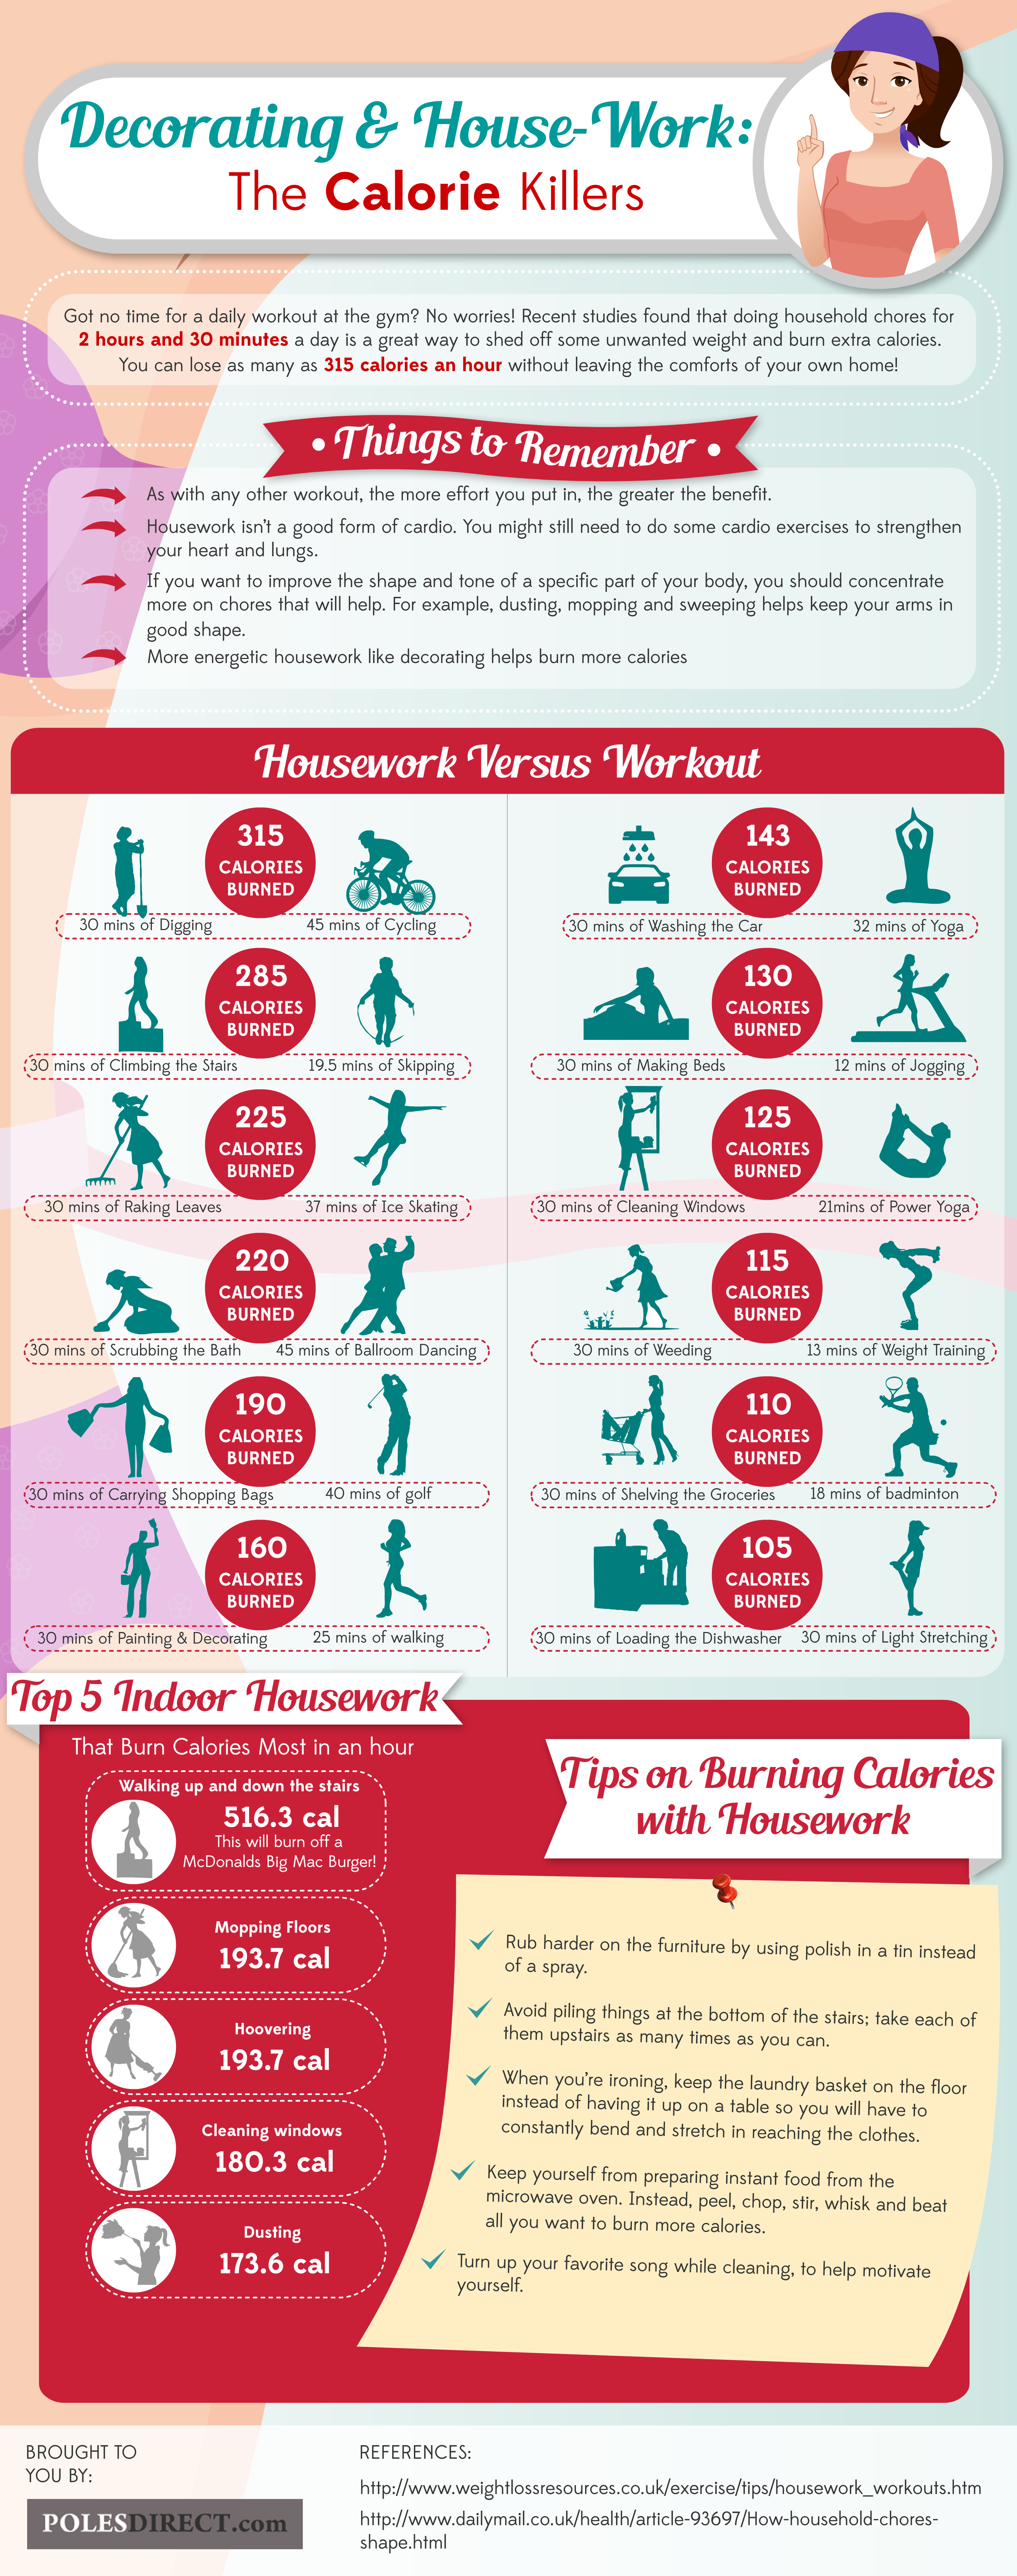 Decorating & House-Work: The Calorie Killers